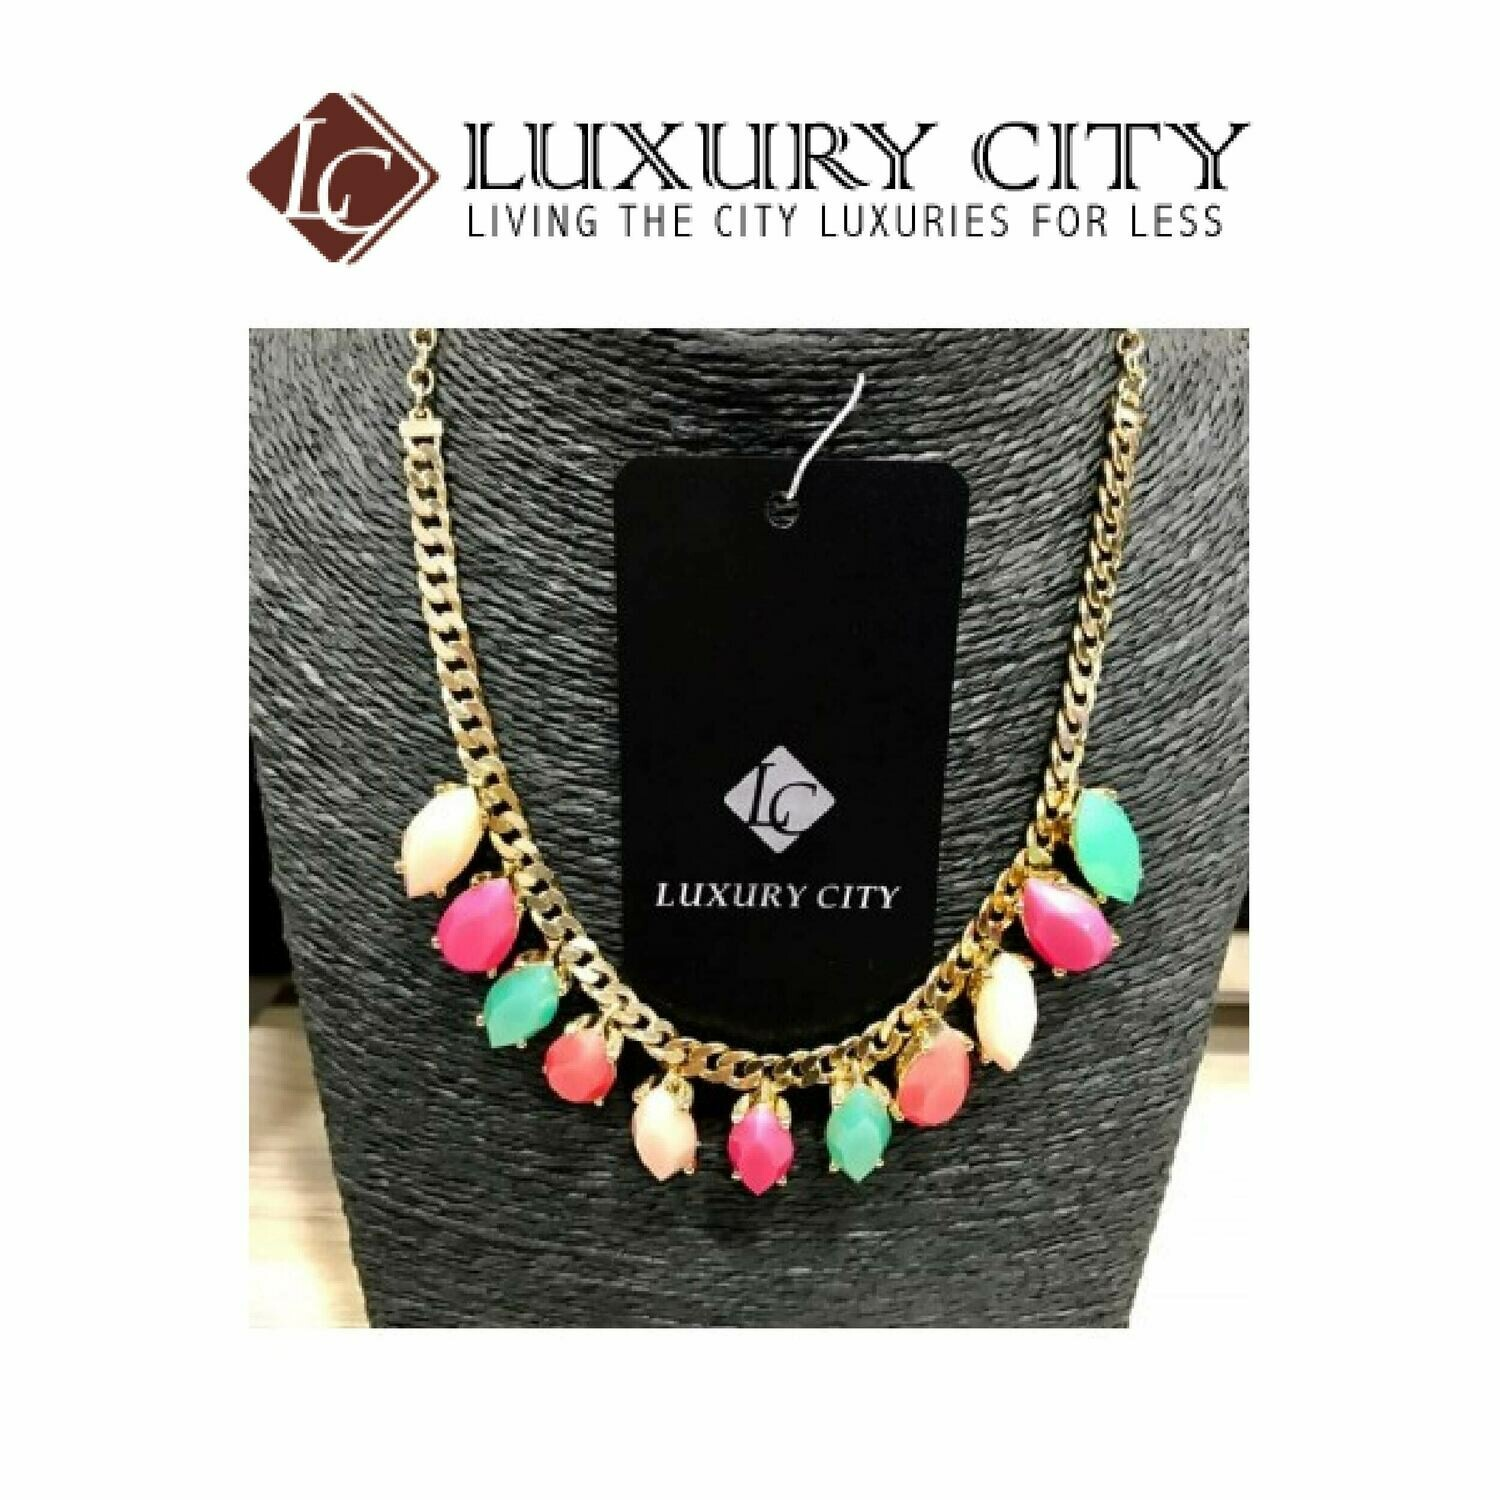 [Luxury City] Kate Spade Necklace